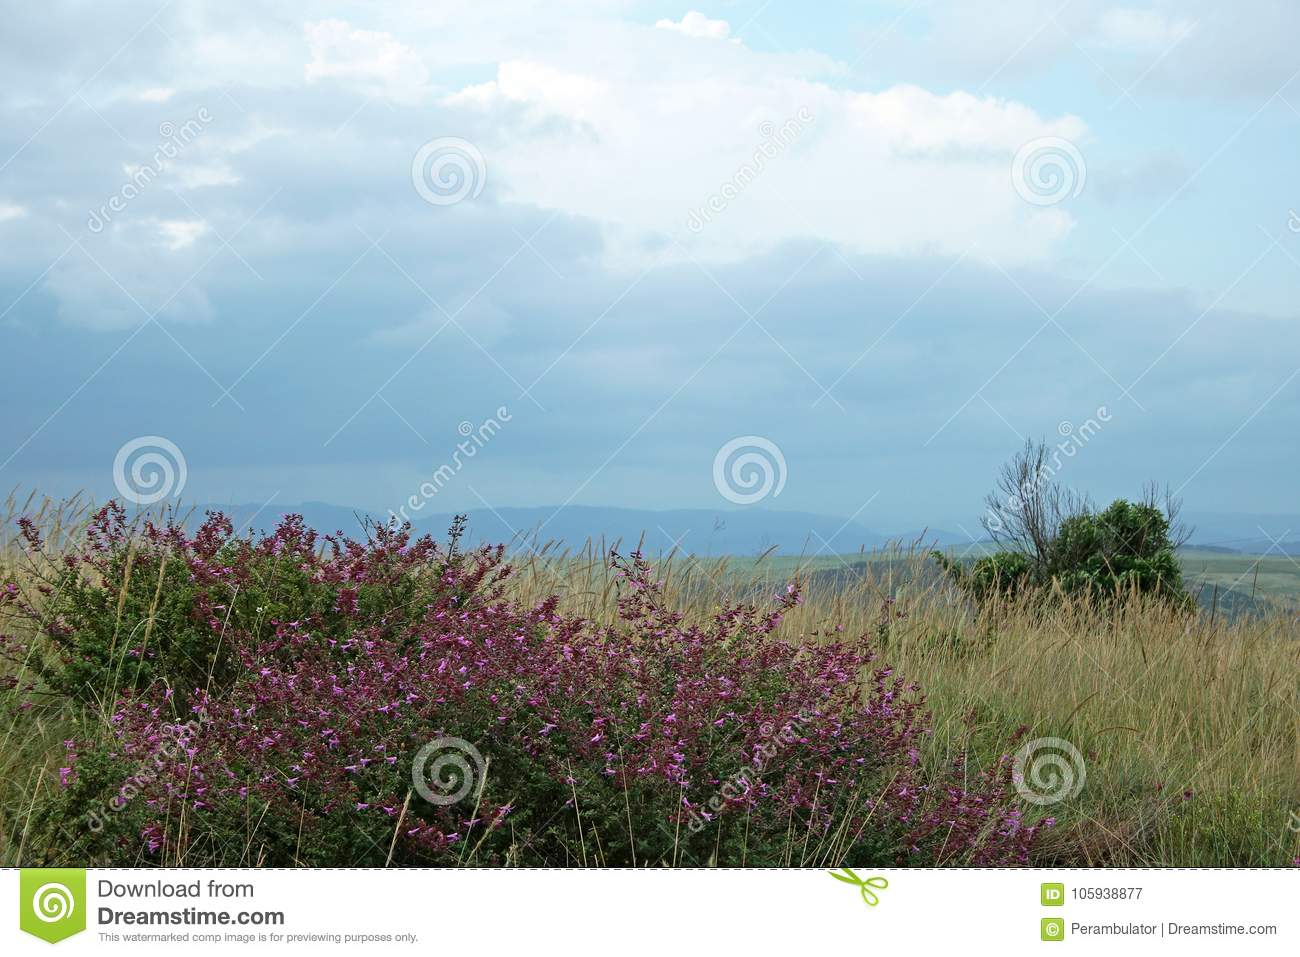 SHRUB WITH PURPLE FLOWERS IN GRASSLAND